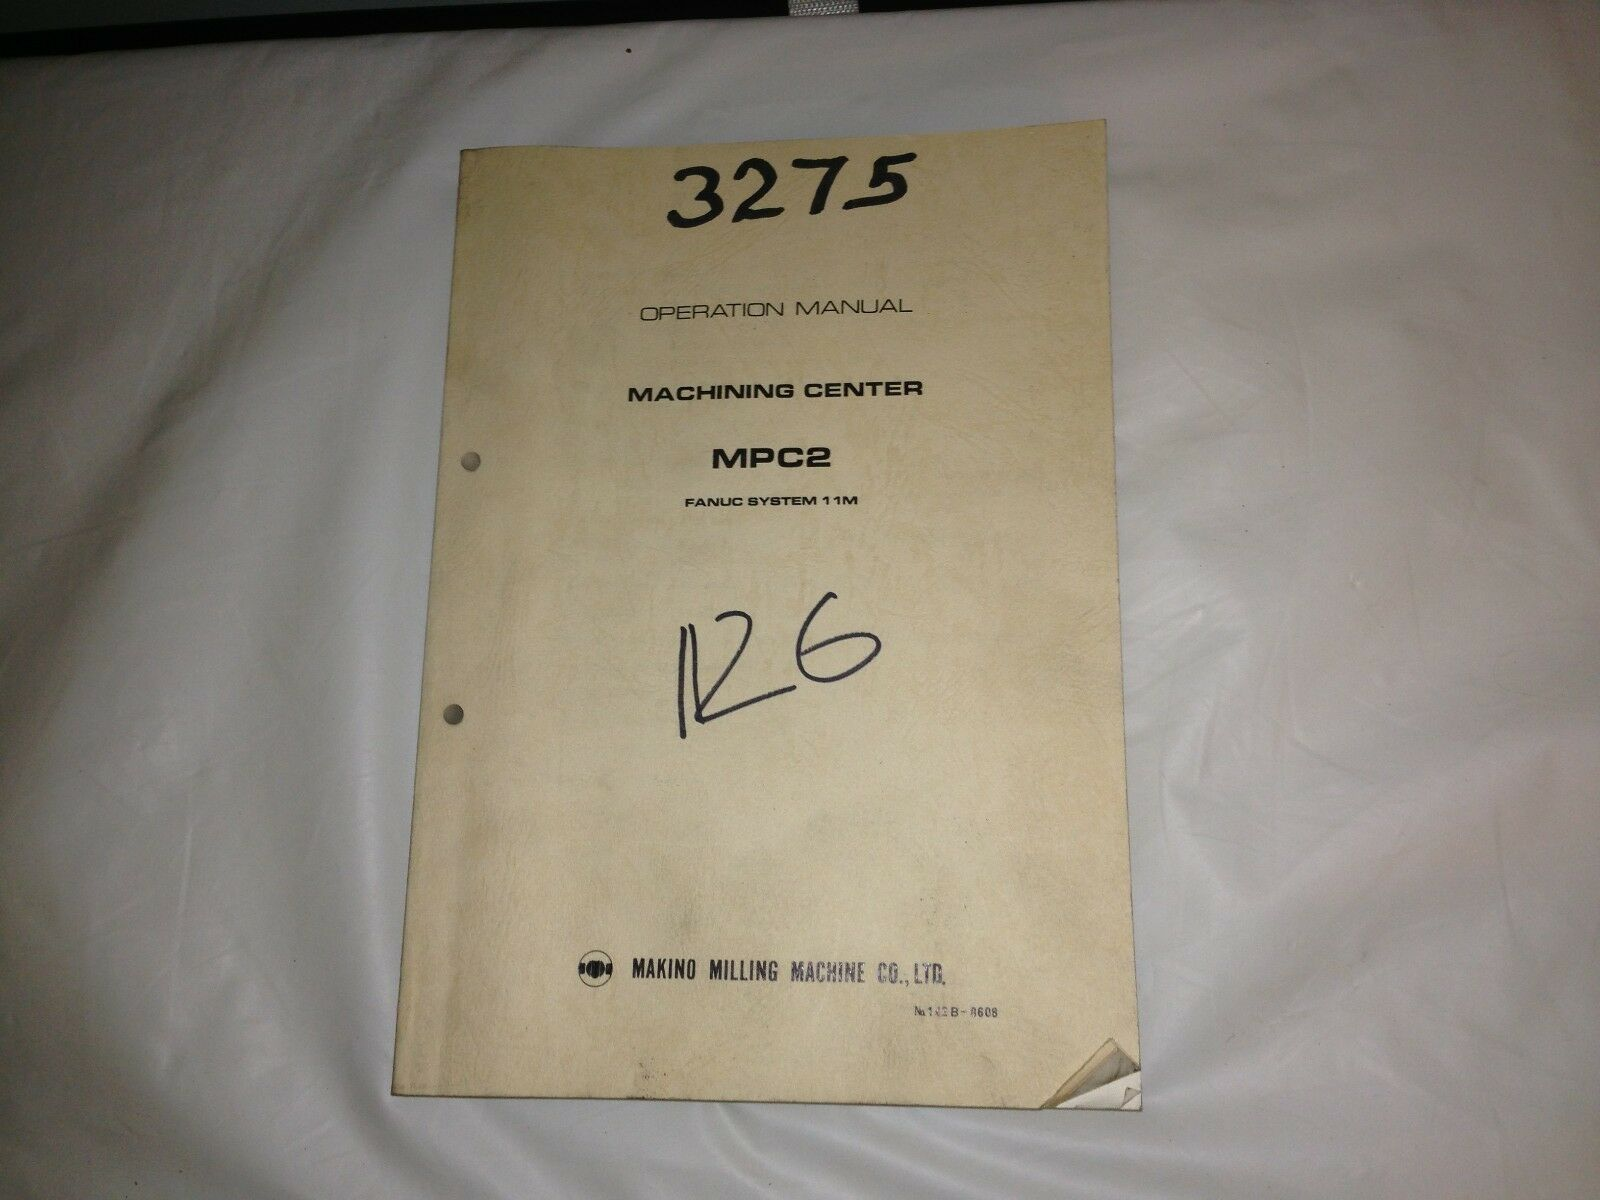 Makino Operation Manual Fanuc System 11M Machining Center MPC2 1 of 1Only 2  available ...